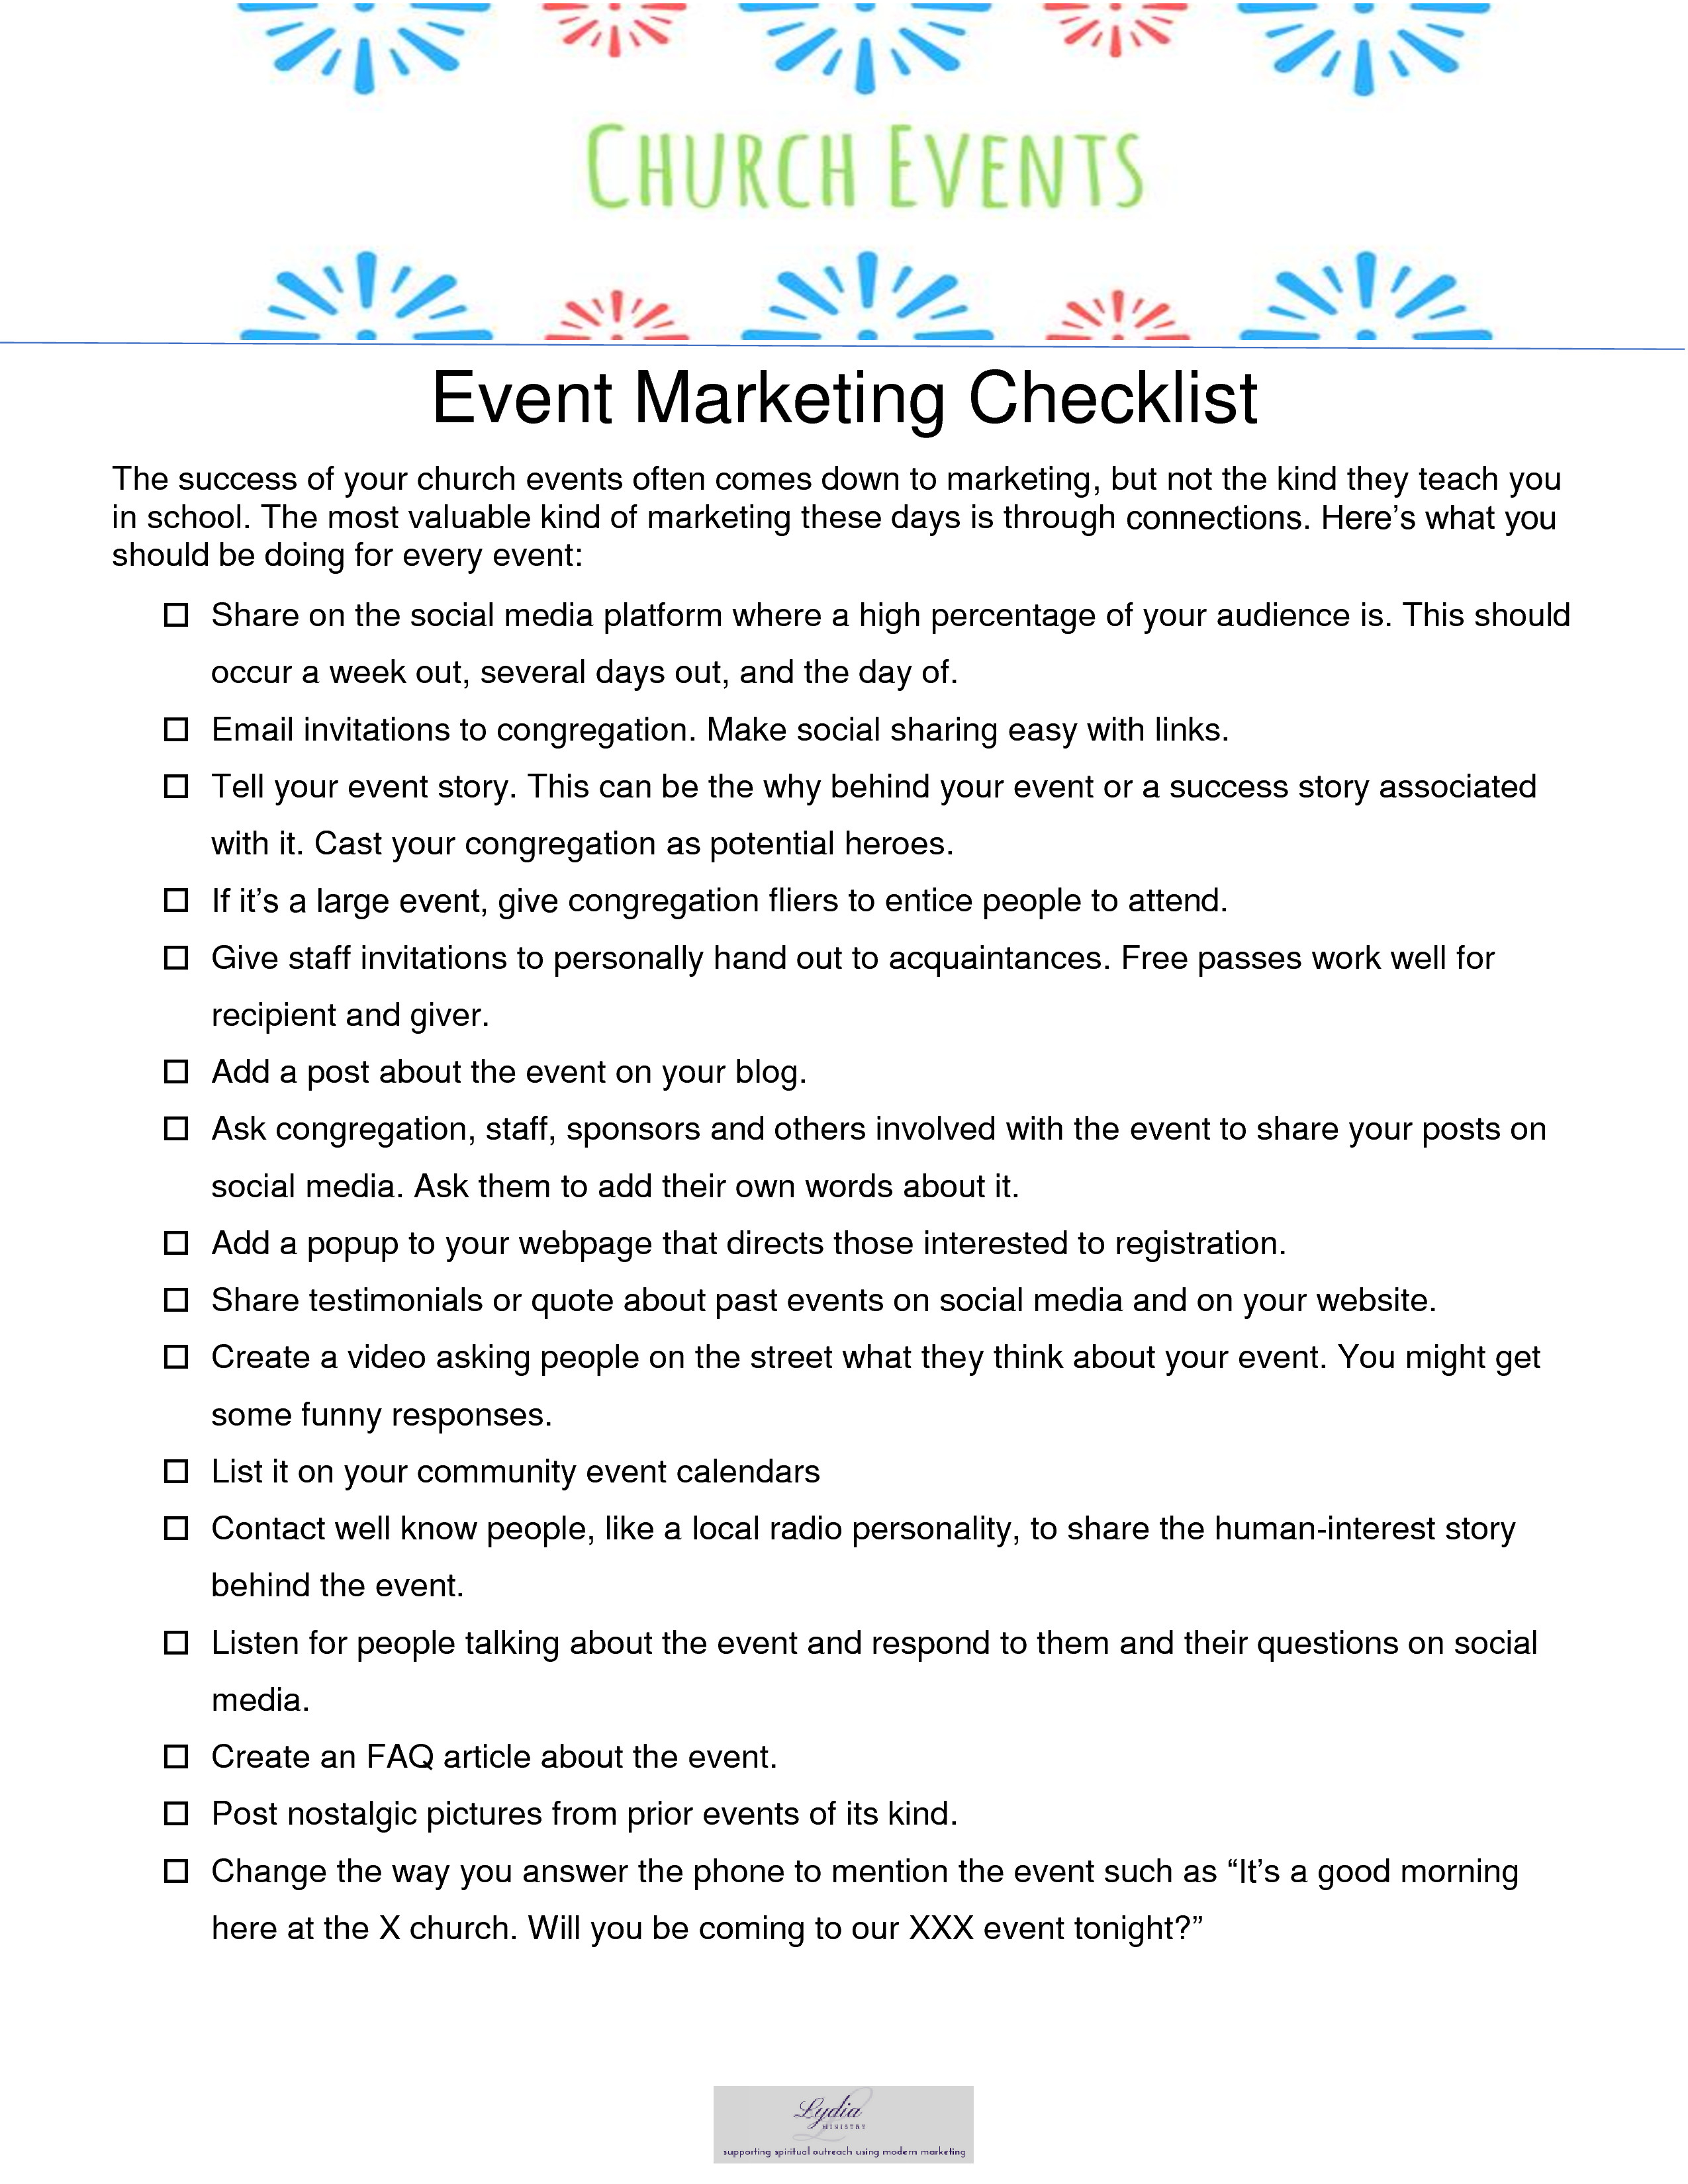 16 ways to market your church event